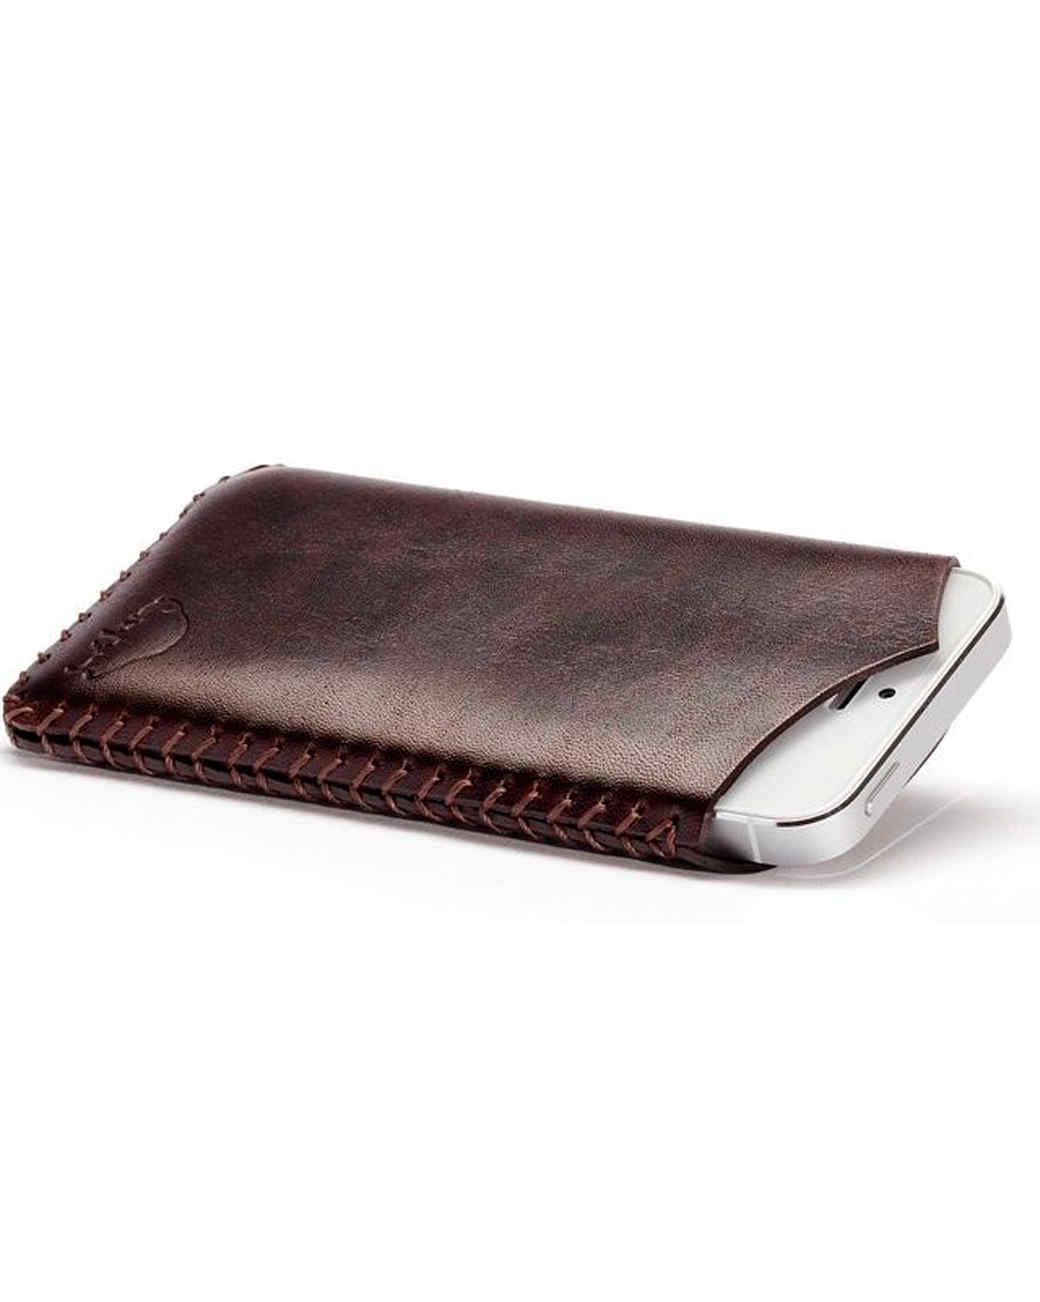 bison-iphone-5-sleeve-0915.jpg